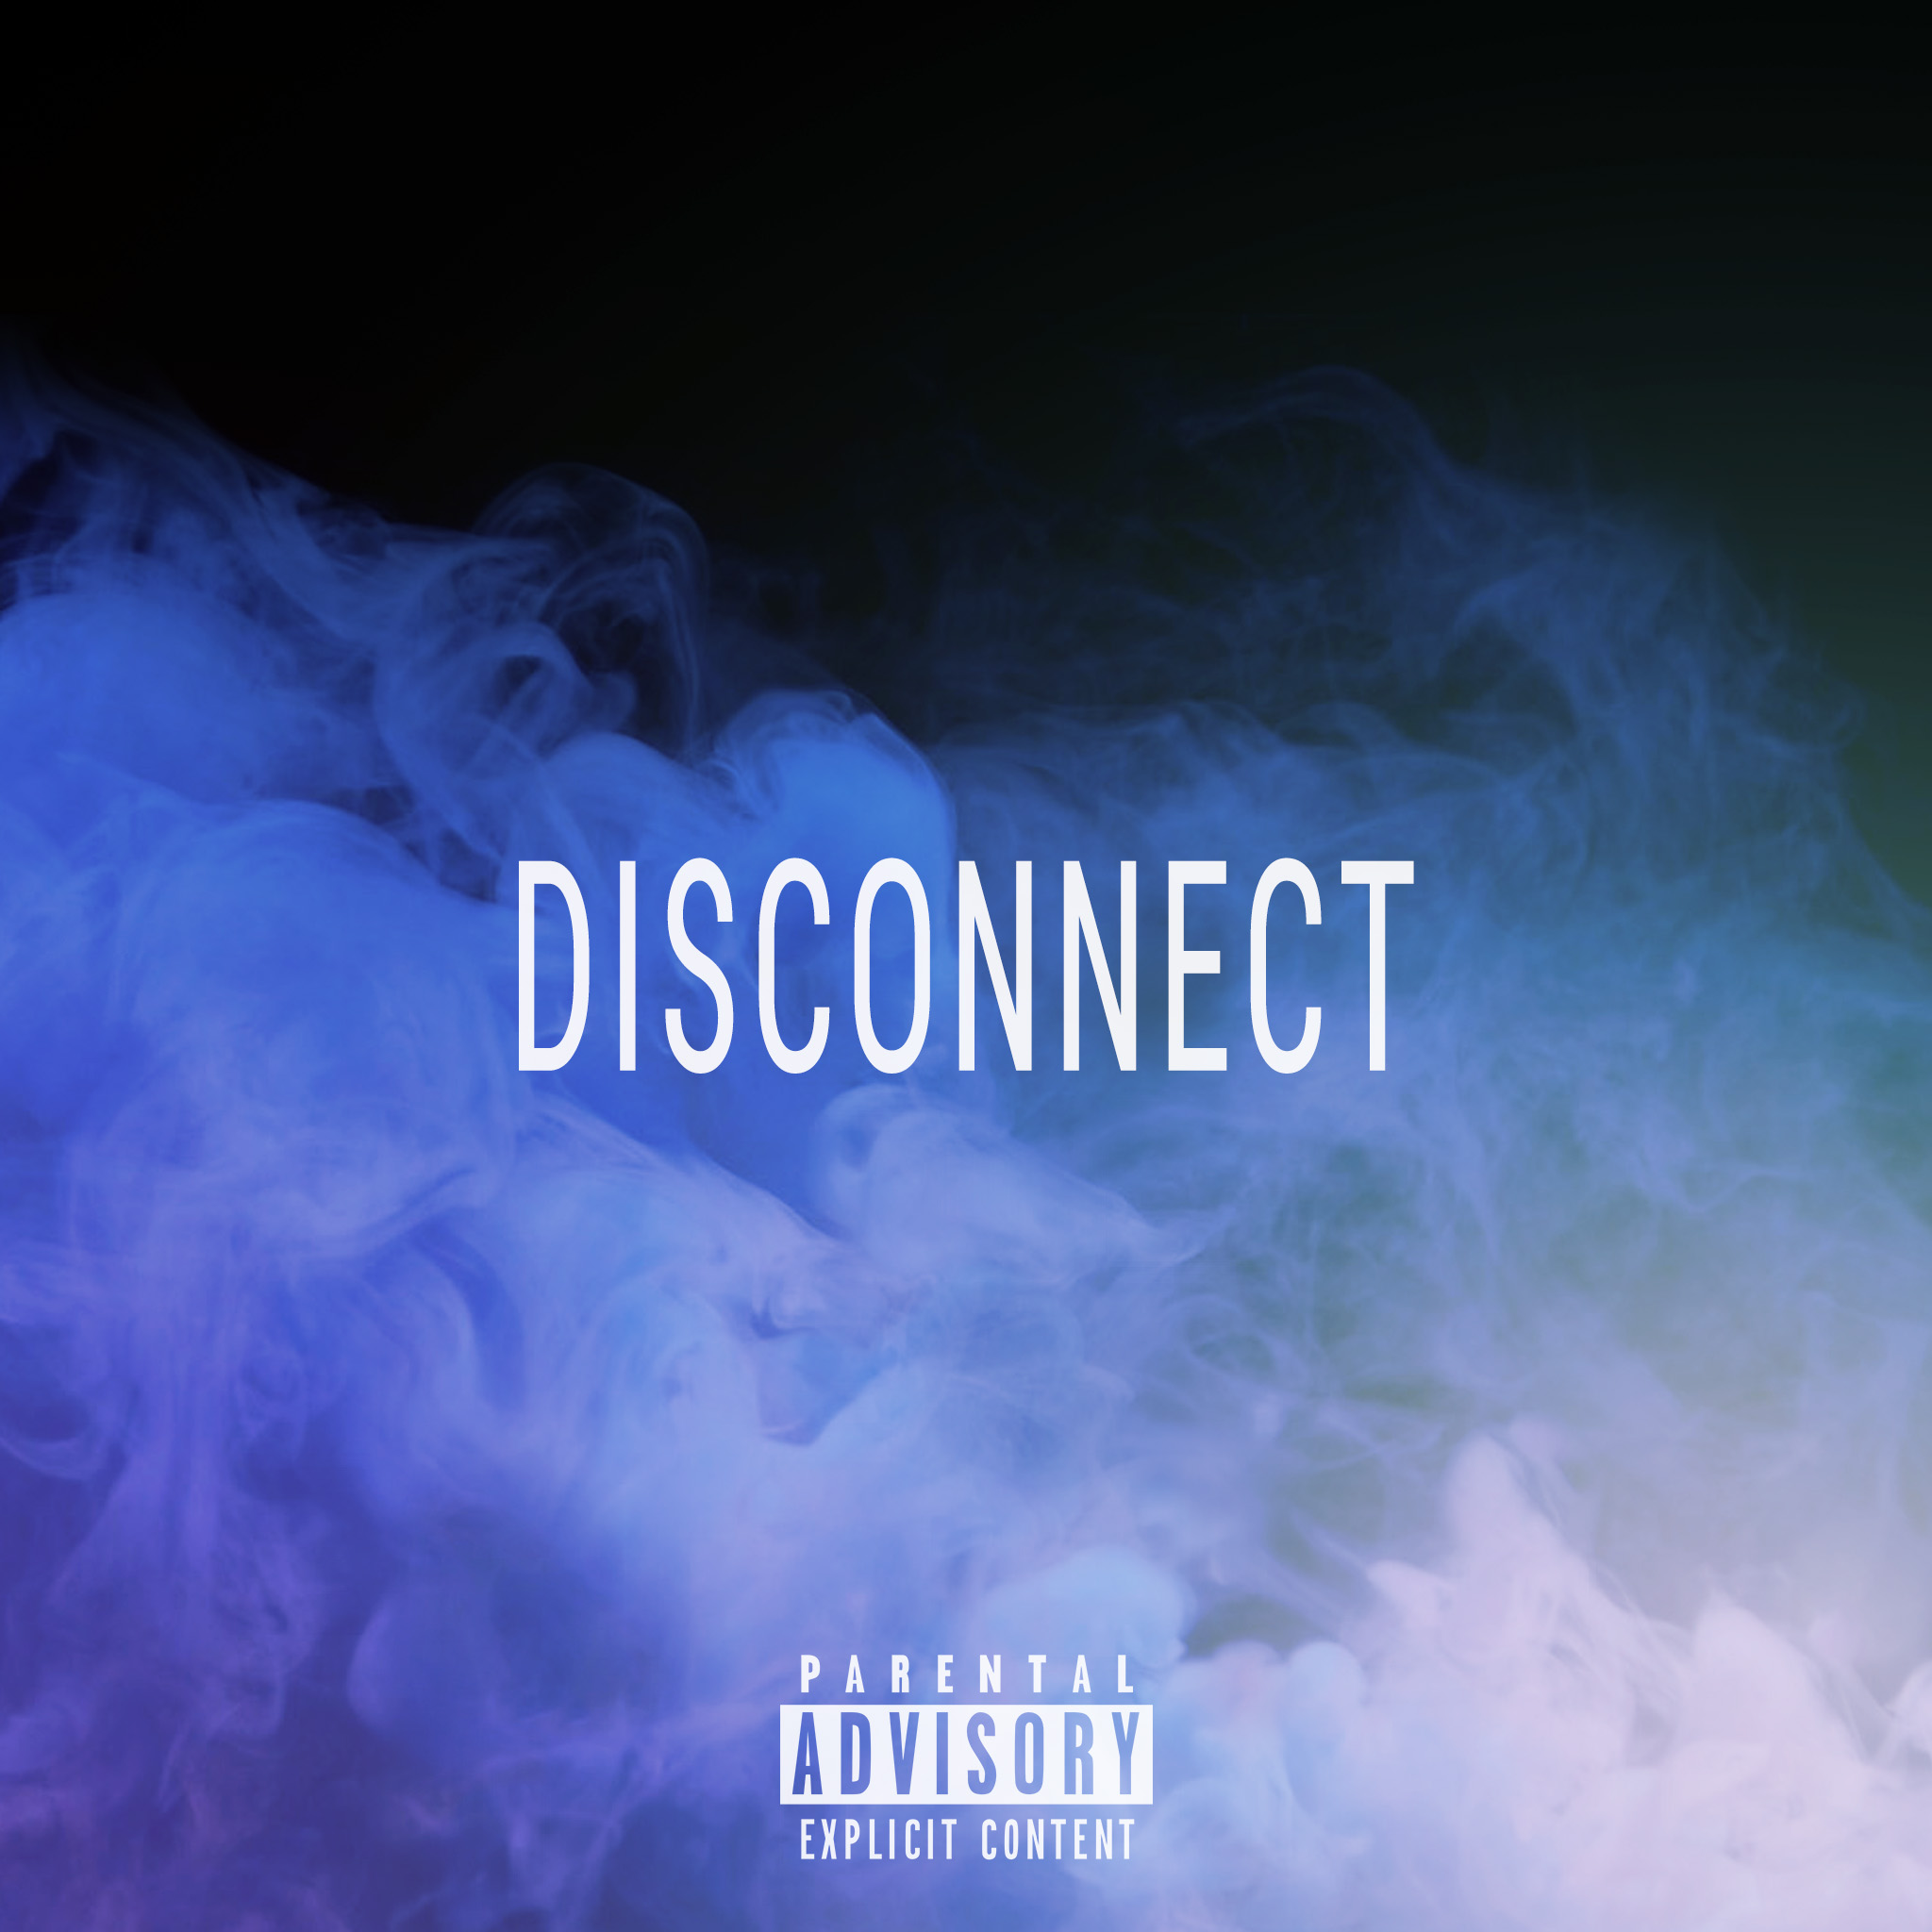 disconnectcover.jpg